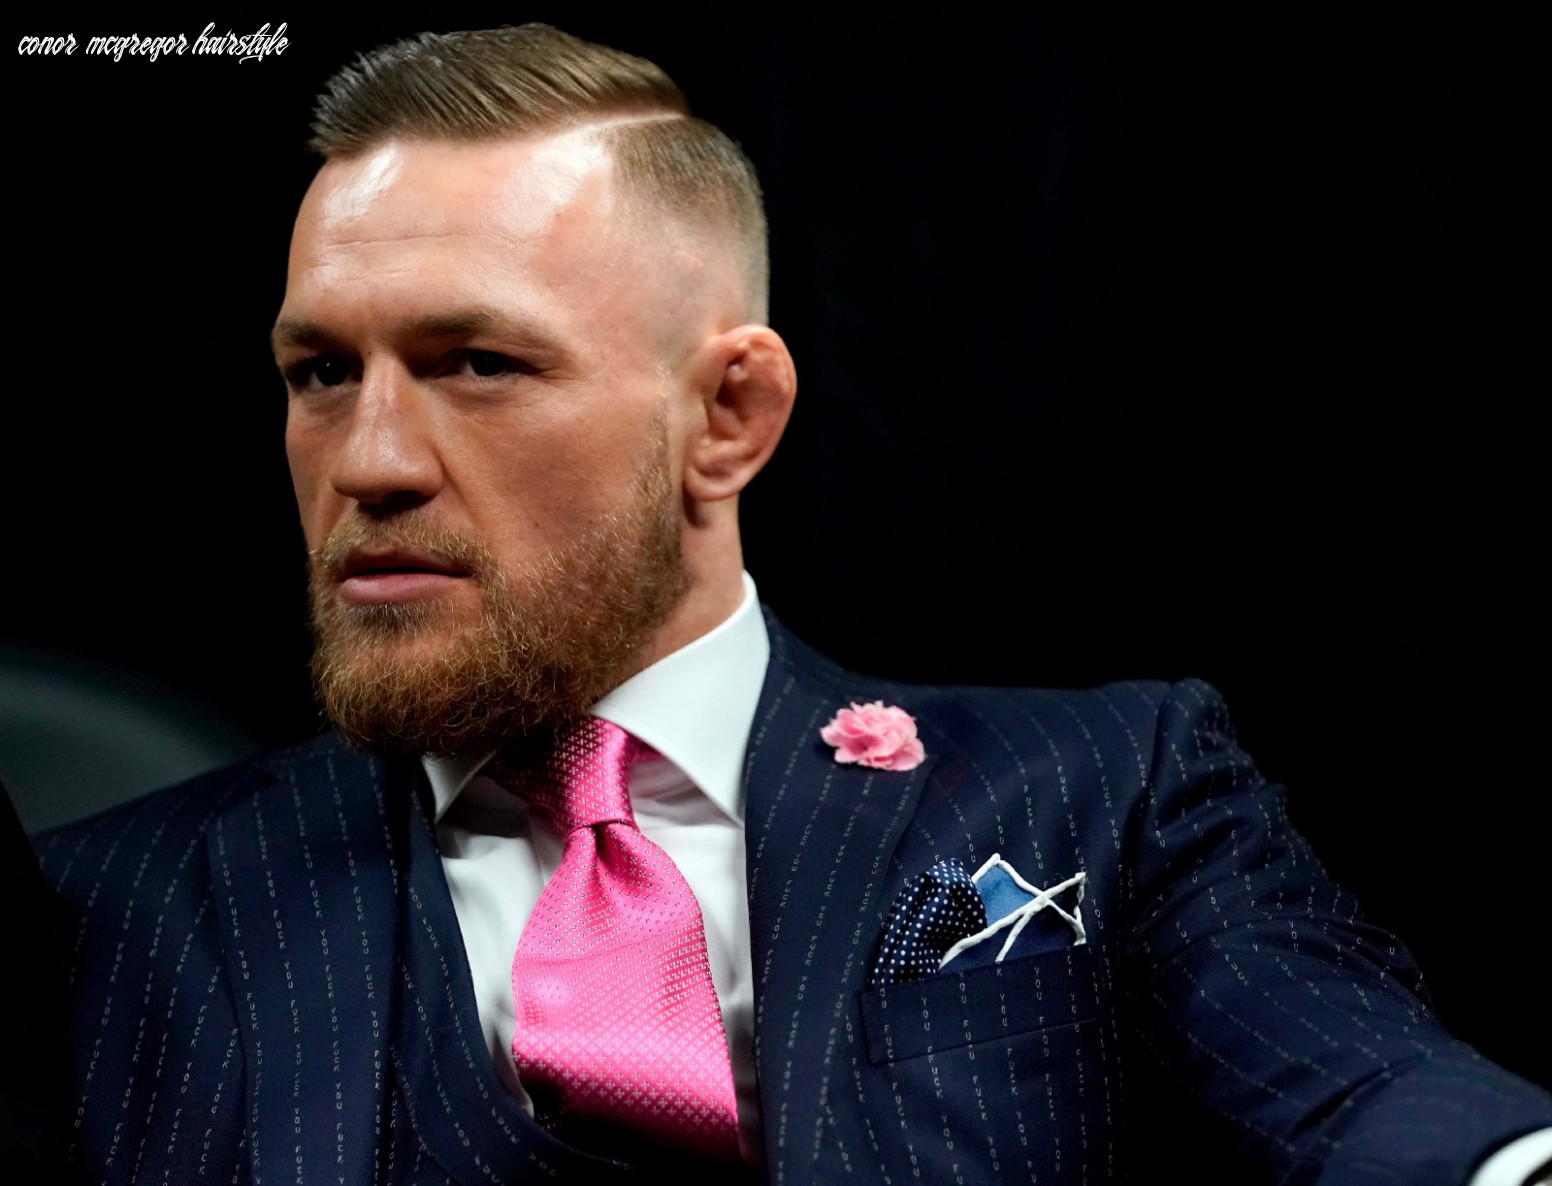 Conor mcgregor haircut & hairstyle | best barber new york manhattan conor mcgregor hairstyle